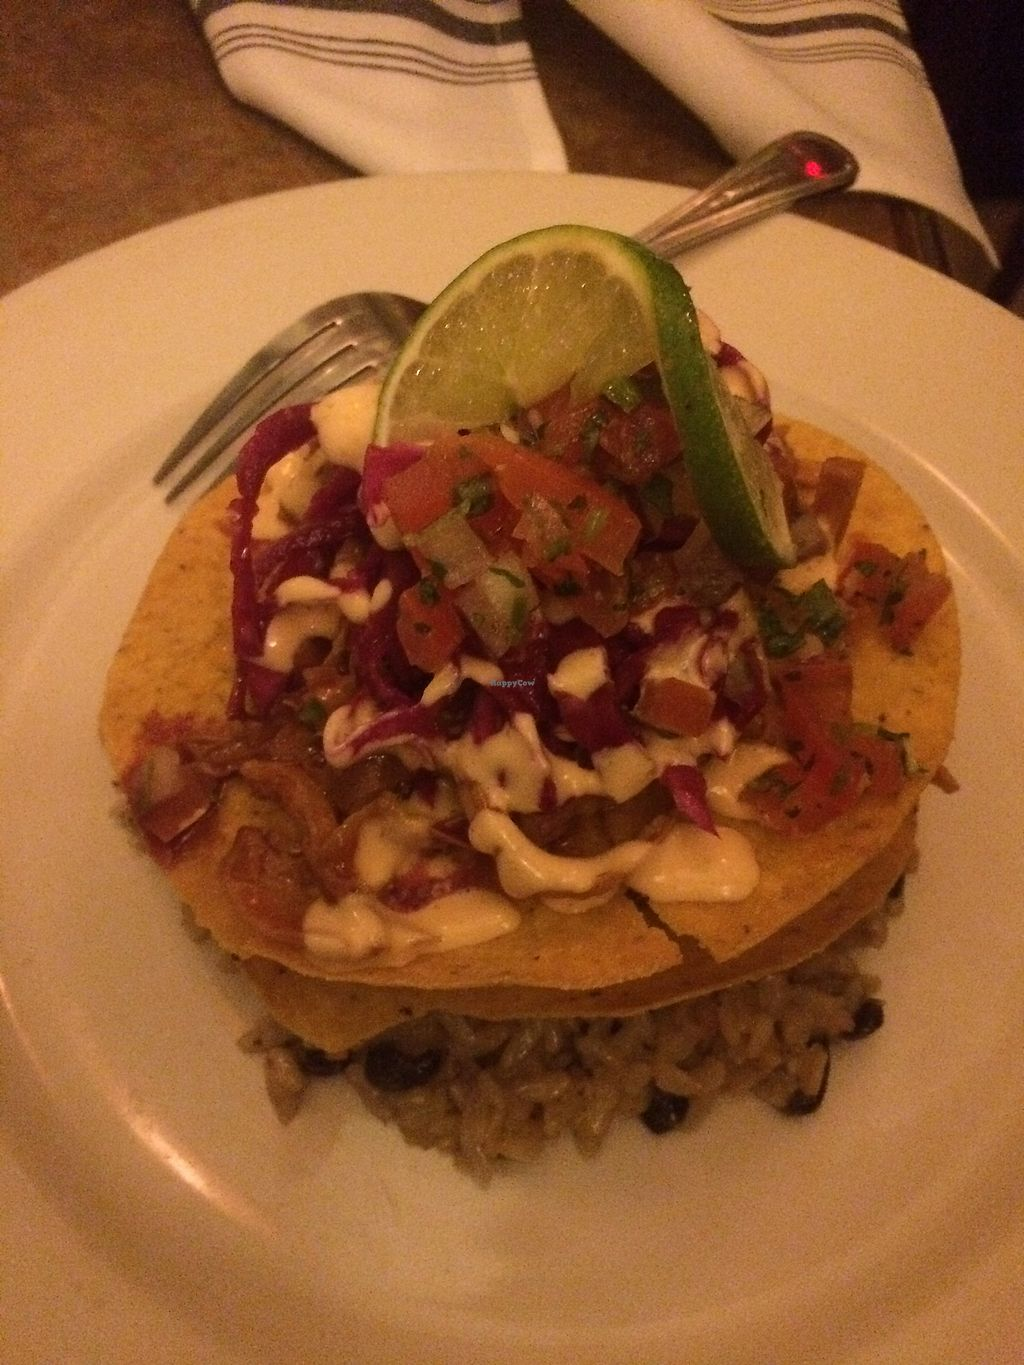 """Photo of Merge  by <a href=""""/members/profile/fruitiJulie"""">fruitiJulie</a> <br/>Tostadas with vegan cheese delicious  <br/> March 1, 2018  - <a href='/contact/abuse/image/16959/365225'>Report</a>"""